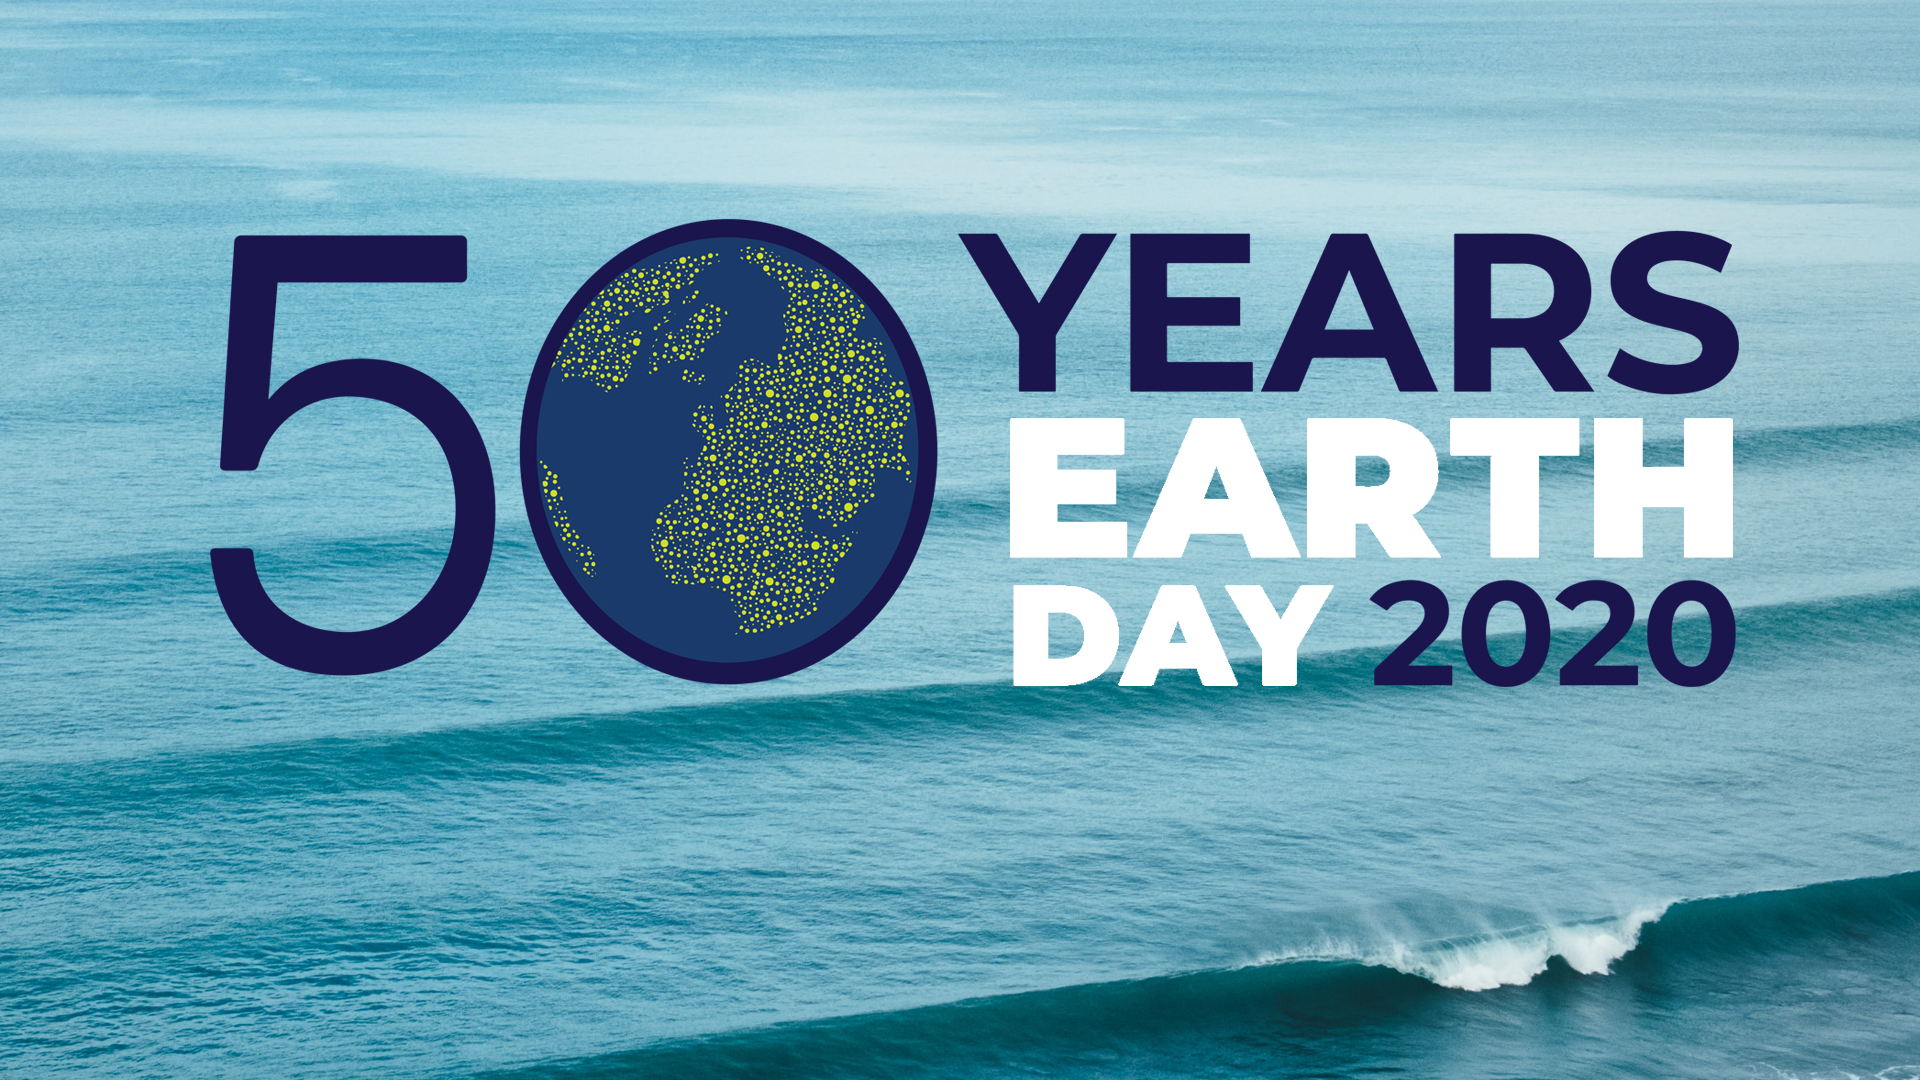 Surfrider Earth Day 2020